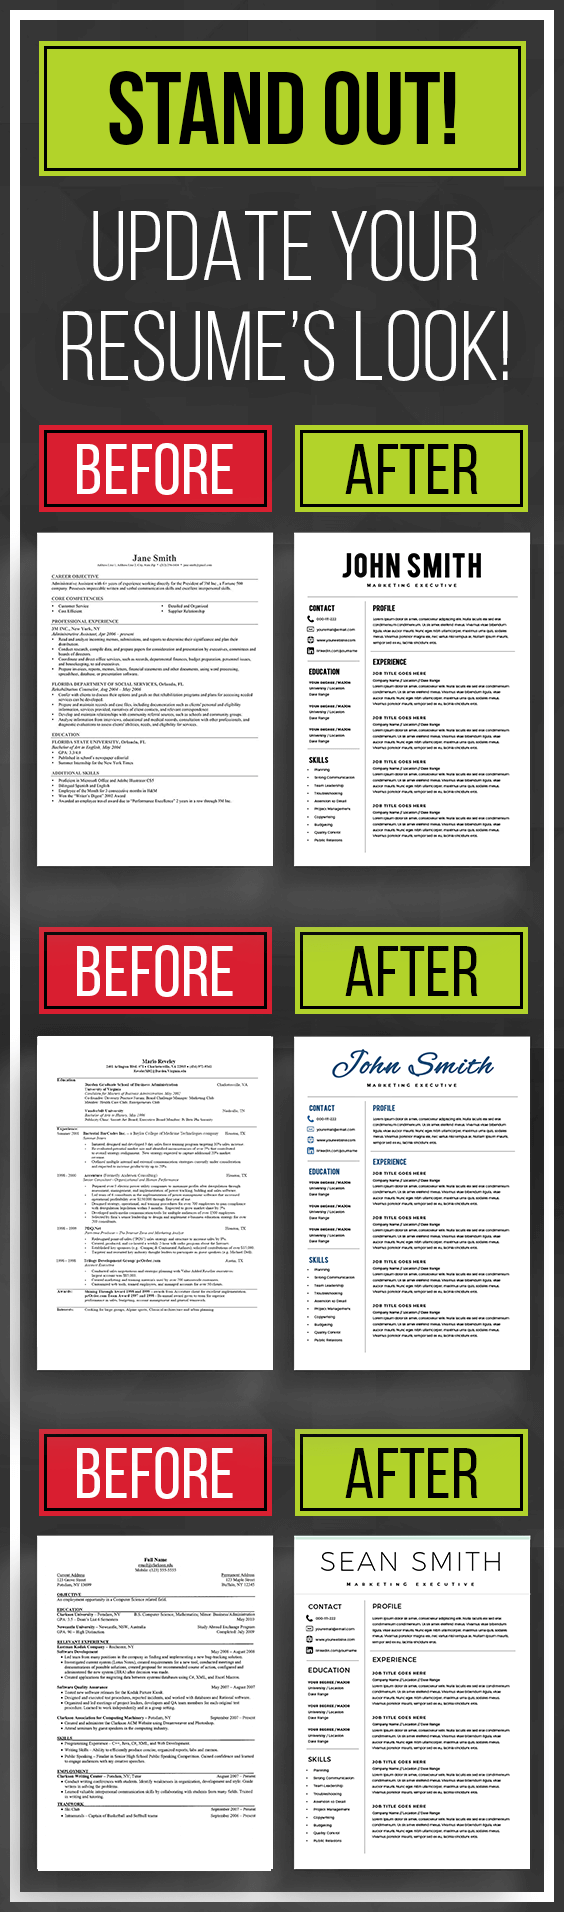 Templates For Resumes Word Interesting Stand Out With Resume Template Resume Templates Word Cv Template .